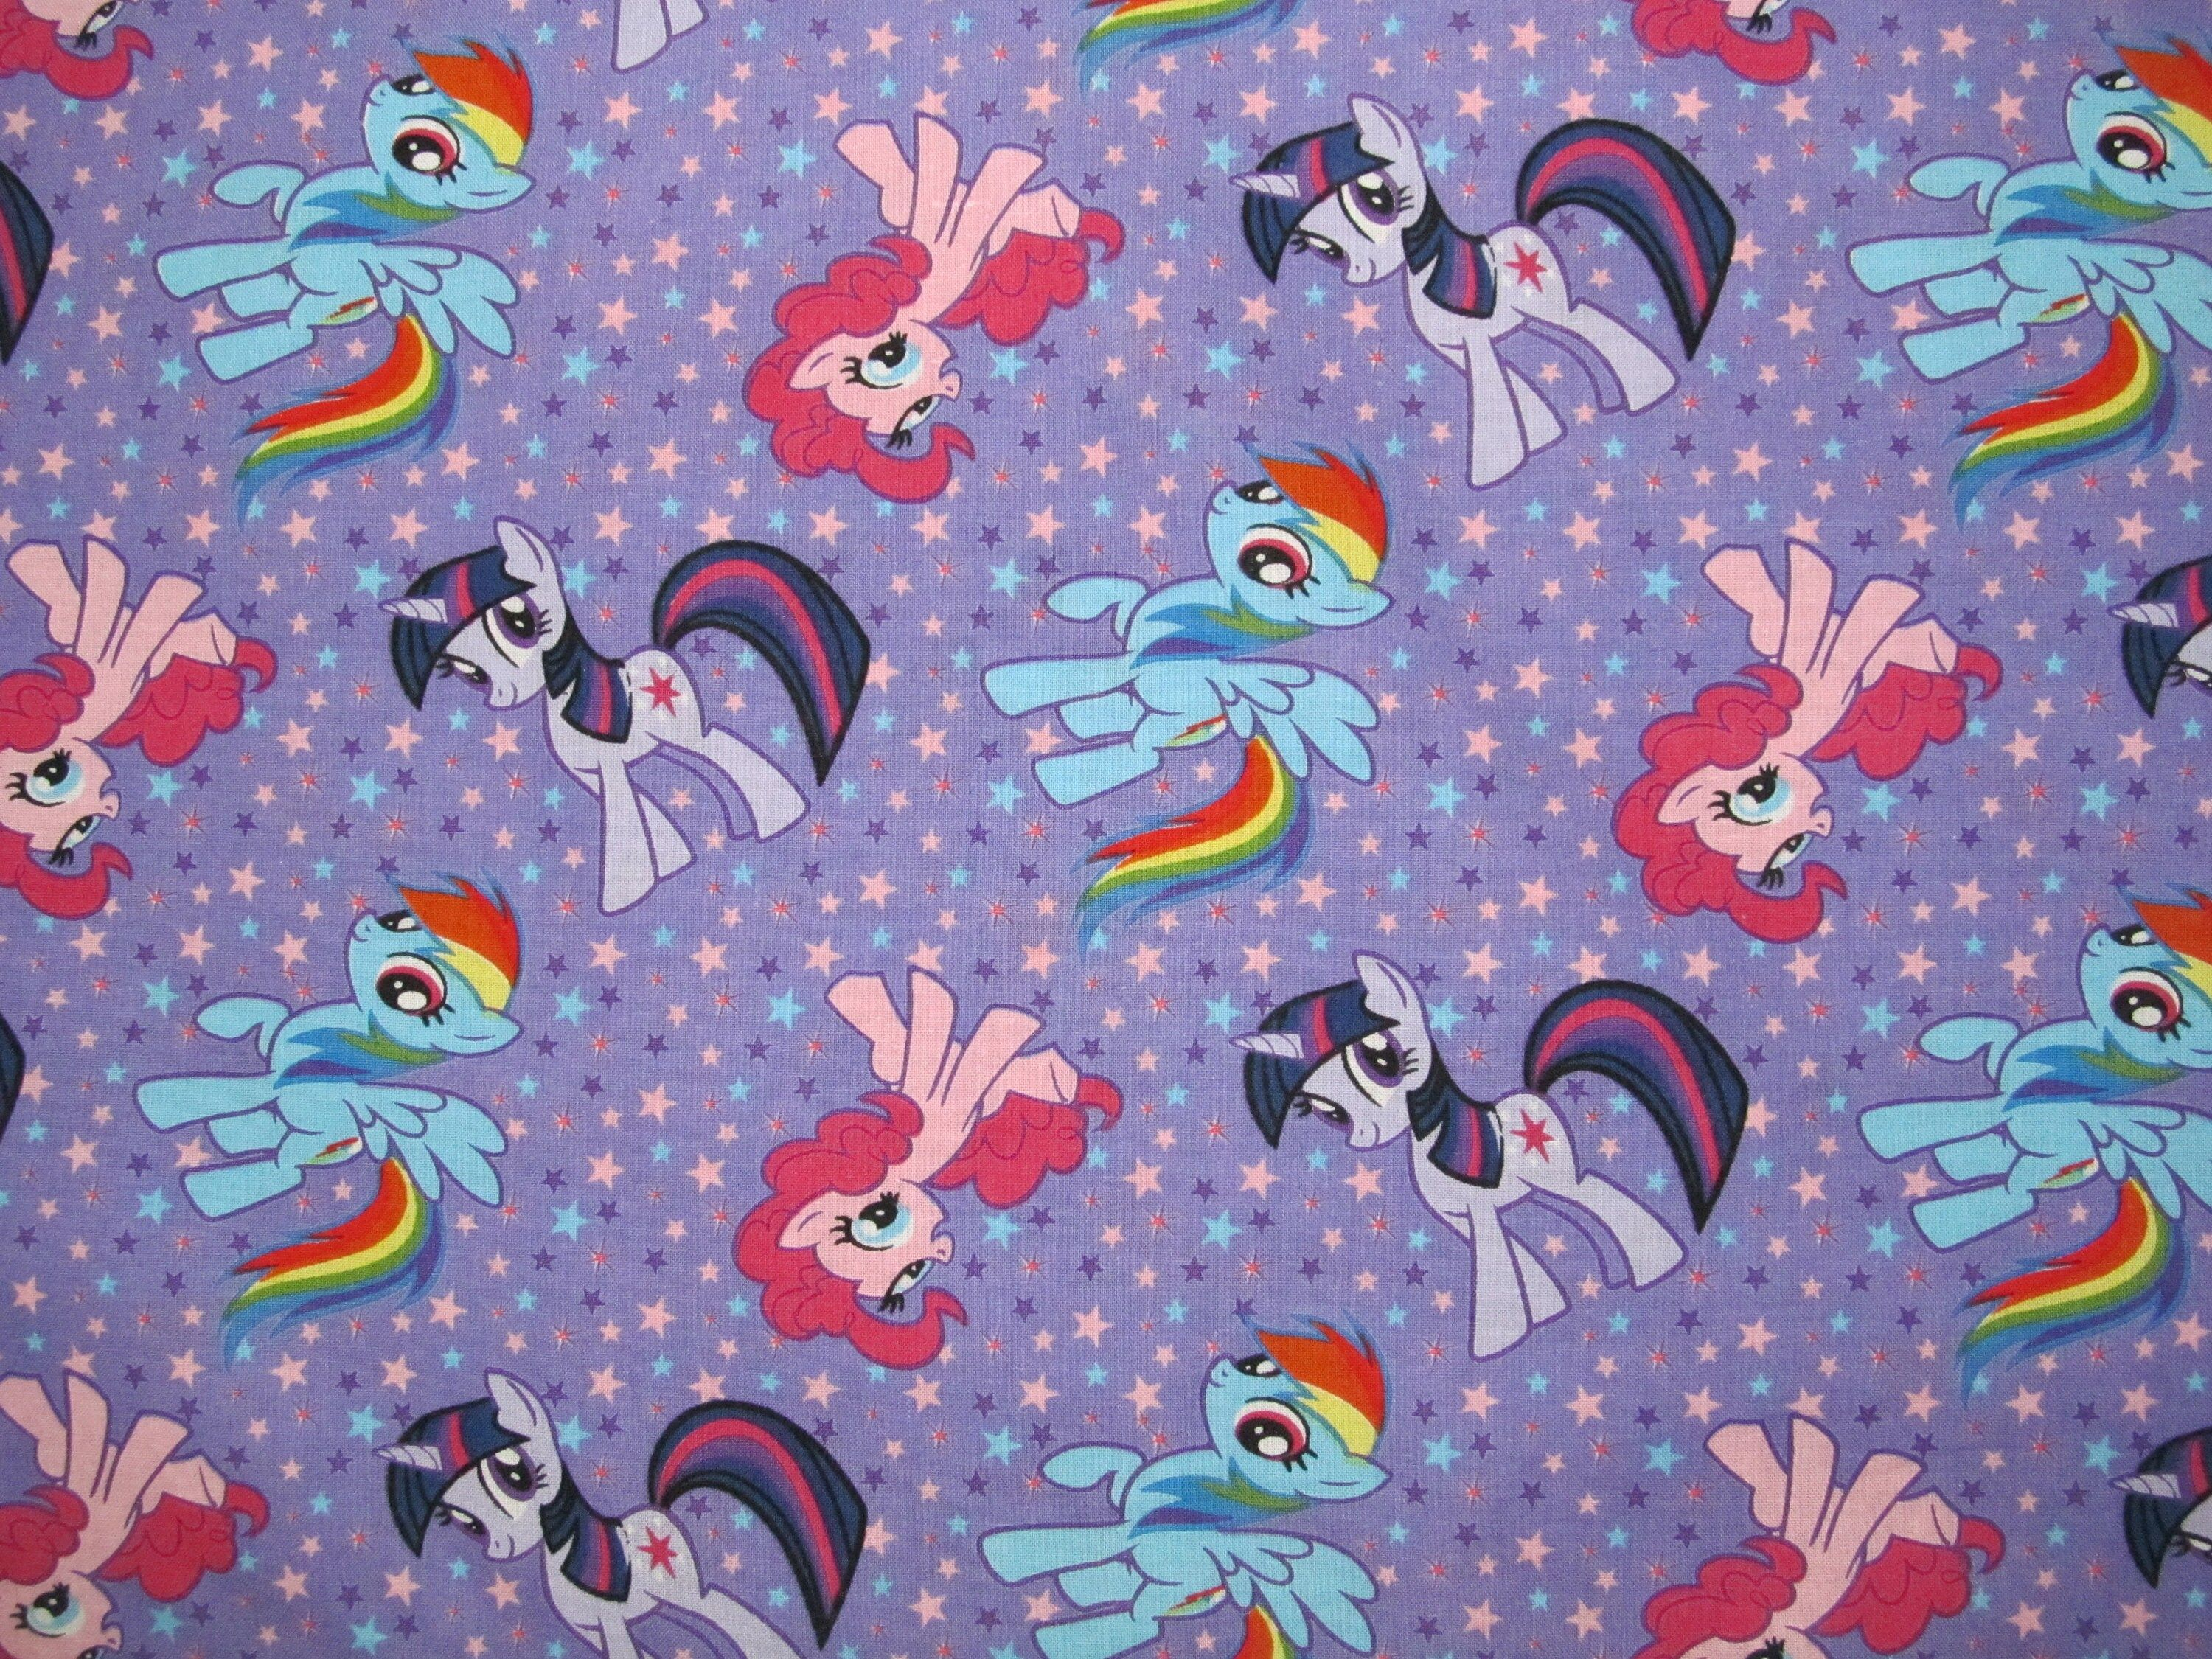 """""""**Cotton fabric** For sale is 1 yard + 30 inches of cotton fabric with My Little Pony printed on it. This fabric has an adorable design that features pictures of some of your favorite My Little Pony's with stars all over it. The background is purple. It is an awesome fabric that you or your little one will just love! It's perfect for making a quilt, pillow case, purse, clothes... whatever your crafty mind can come up with :) Fabric will be in one continuous piece. The fabric is approx 44\"""" wide"""